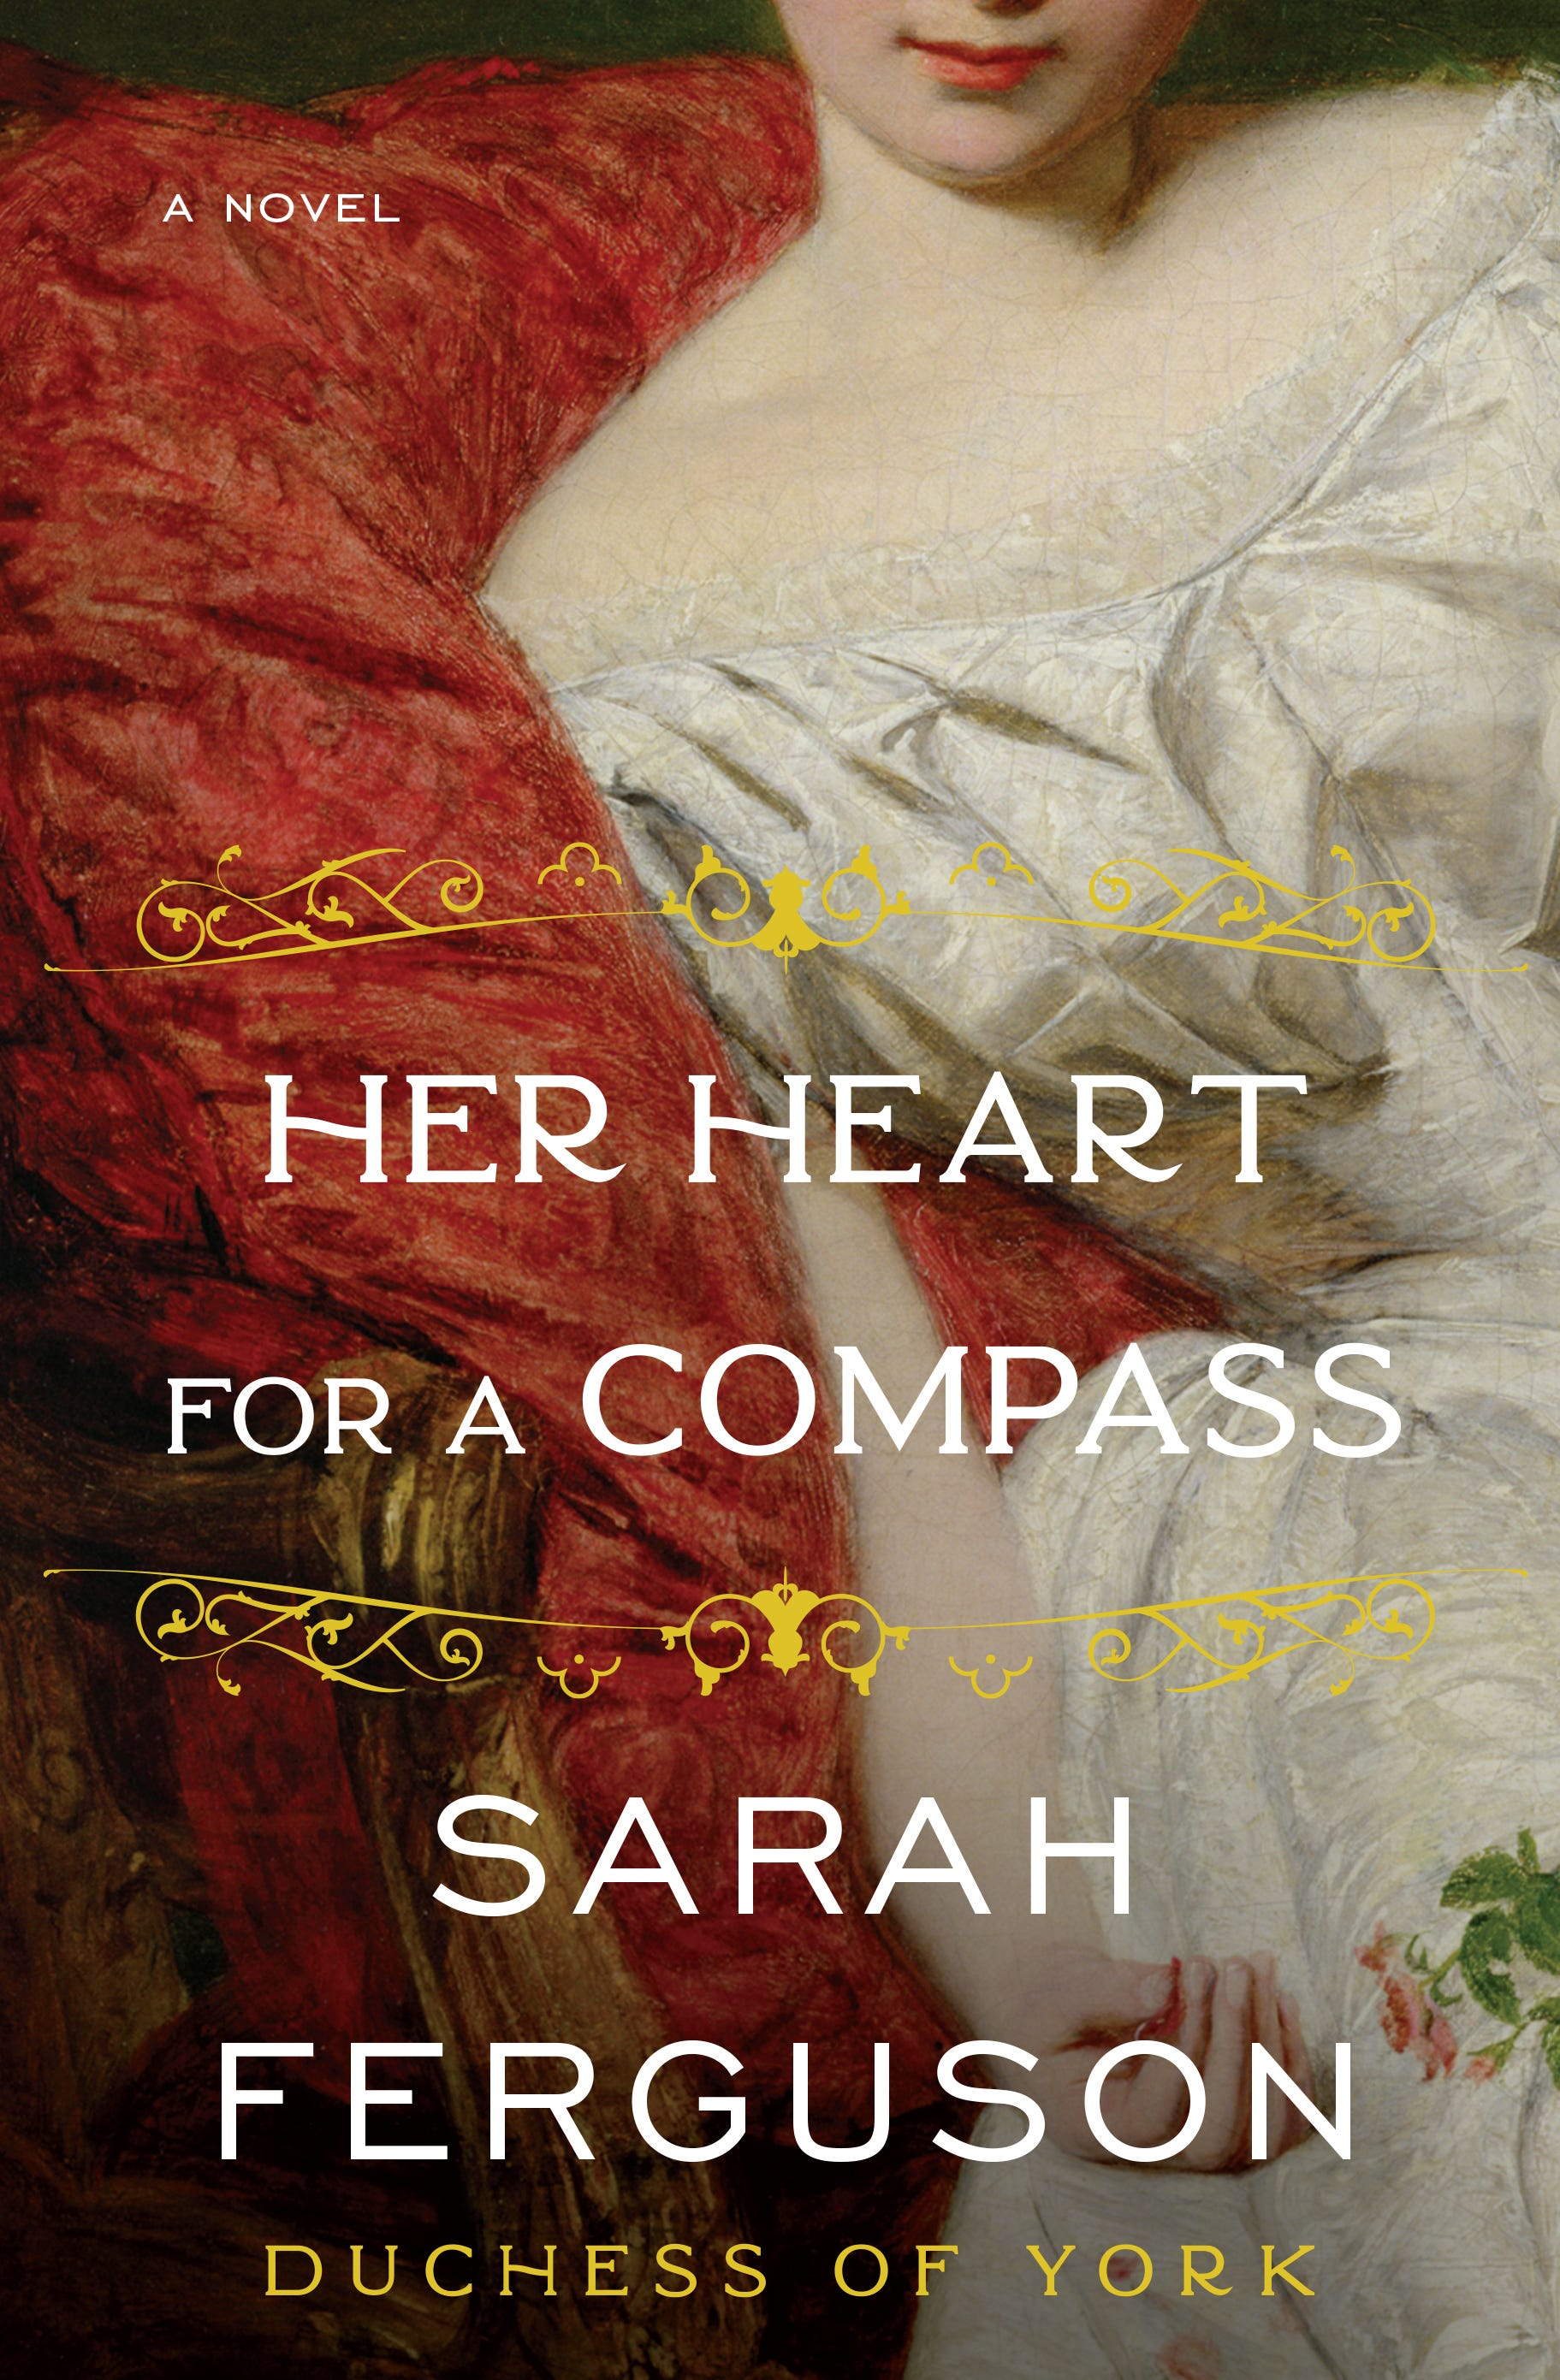 Sarah, Duchess of York channels history of rebellion, royalty and red hair into debut novel